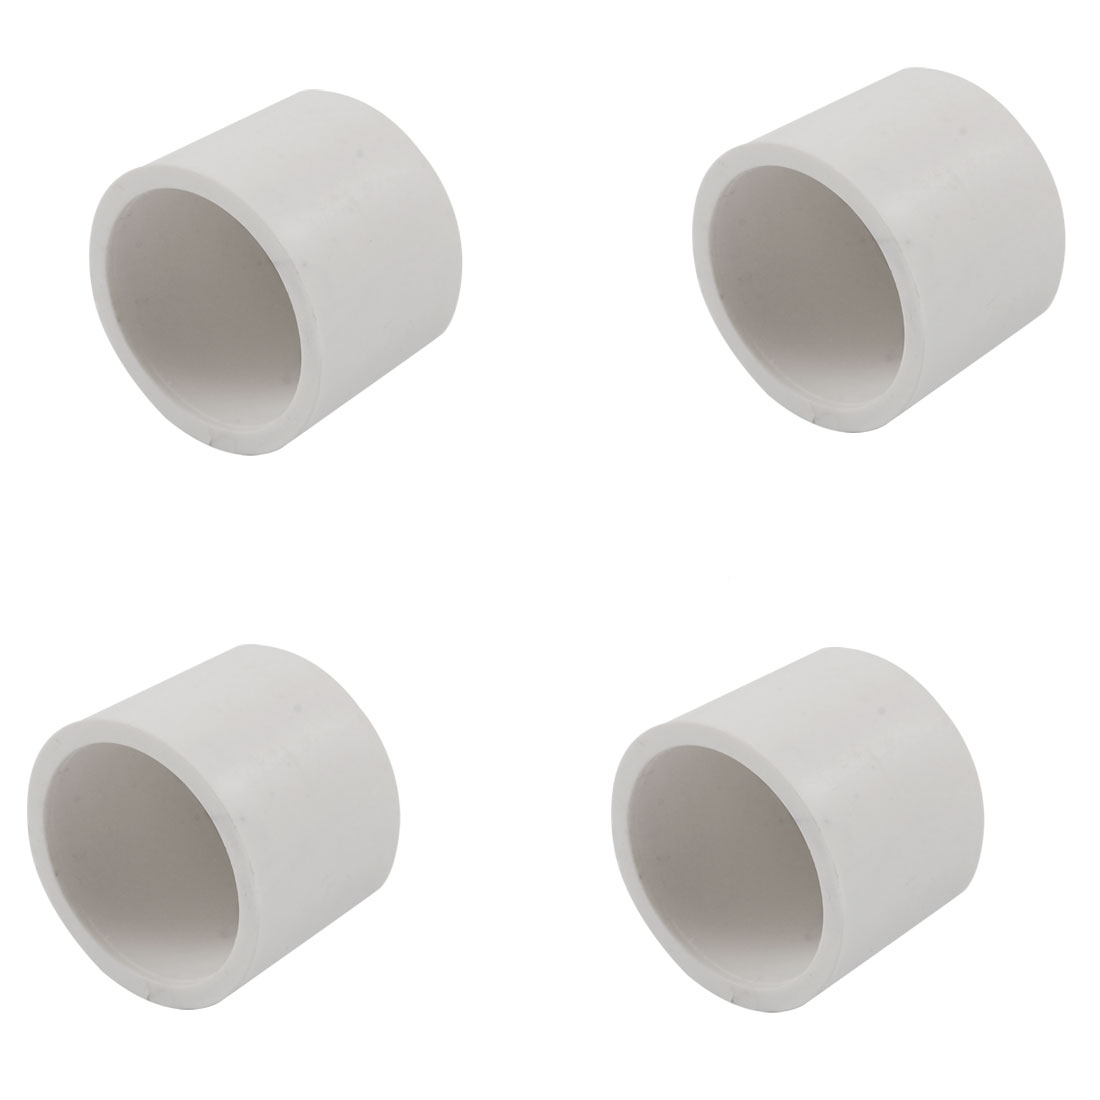 25.2mm White PVC Hose Tube End Fitting Adapter Caps 4 Pcs